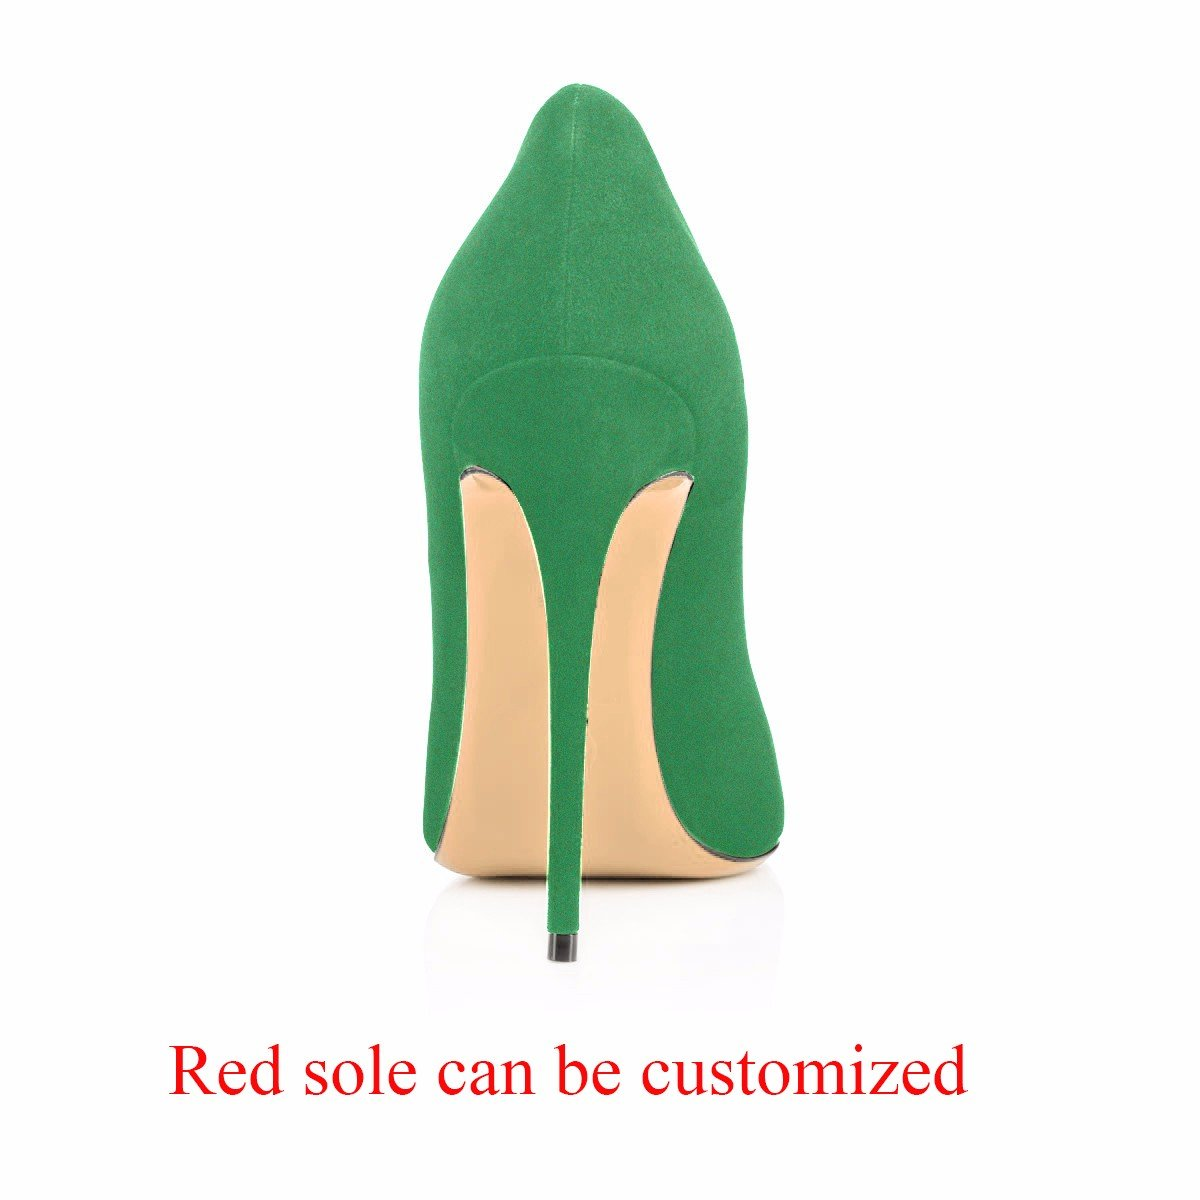 Modemoven Women's Pointy Toe High Heels Slip On Stilettos Large Size Wedding Party Evening Pumps Shoes B0773RXPM3 14 B(M) US|Green Suede